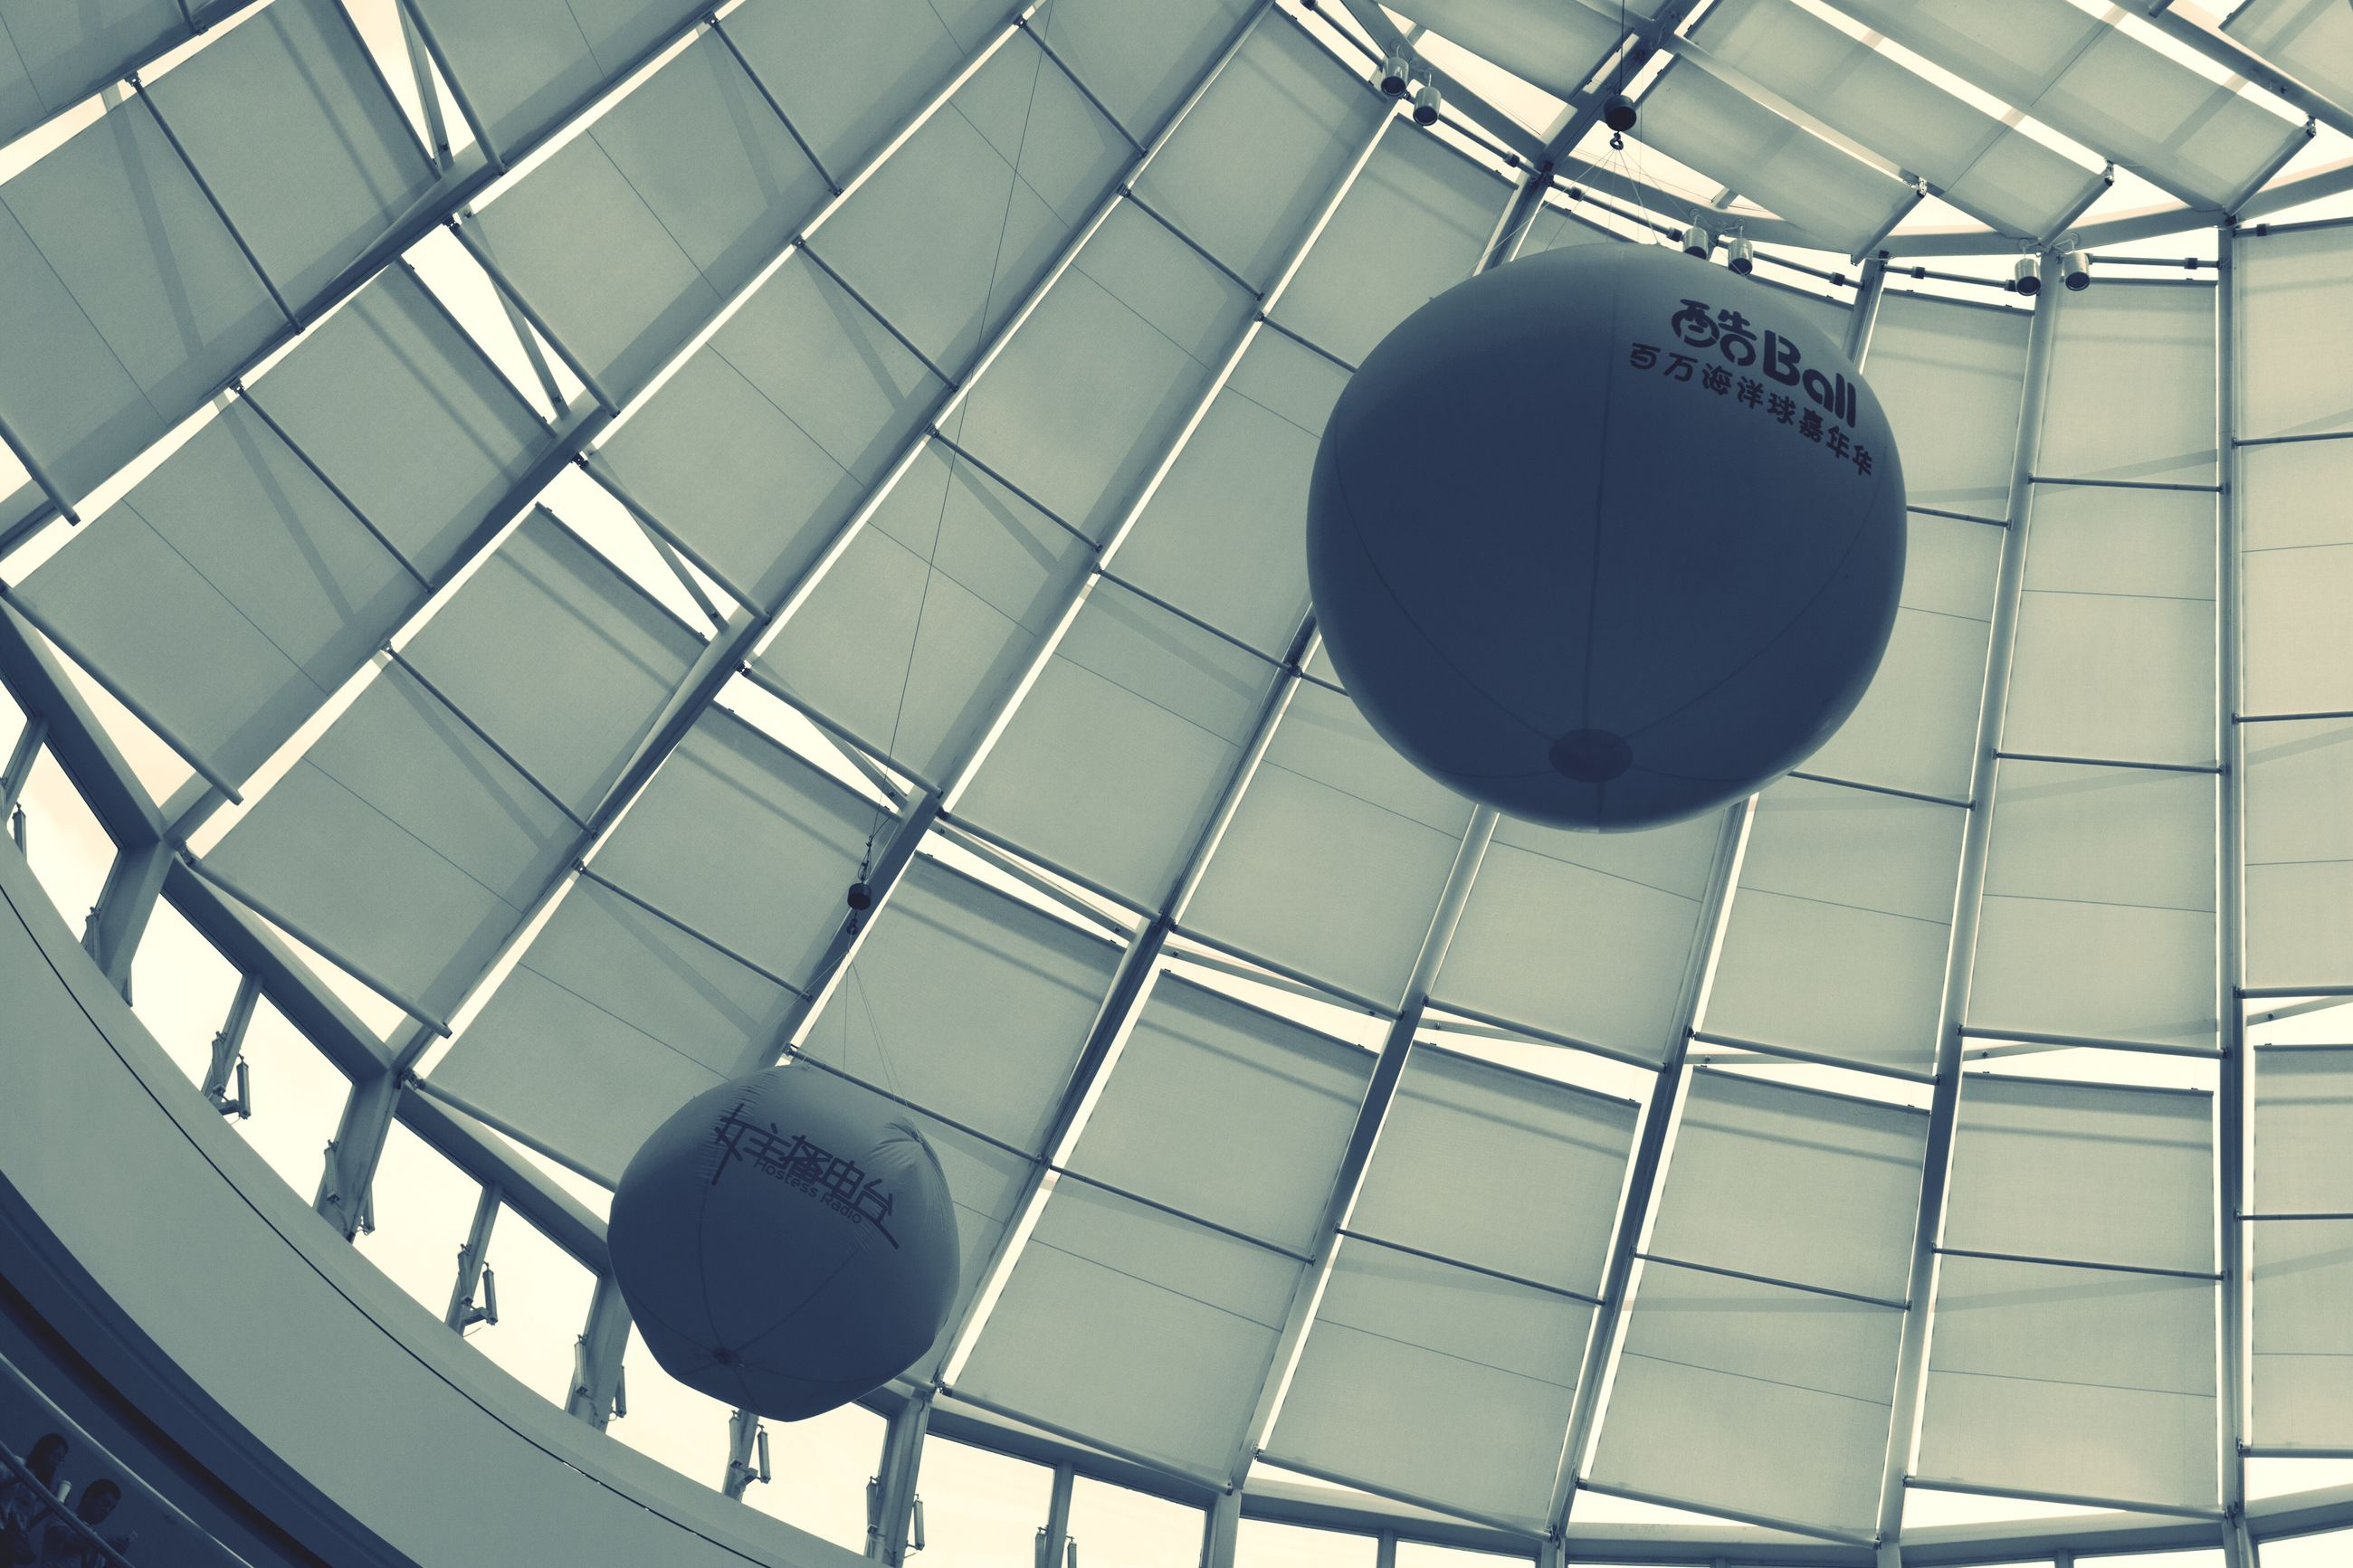 indoors, built structure, architecture, low angle view, communication, text, ceiling, pattern, geometric shape, metal, no people, wall - building feature, hanging, circle, western script, modern, day, building exterior, building, shape